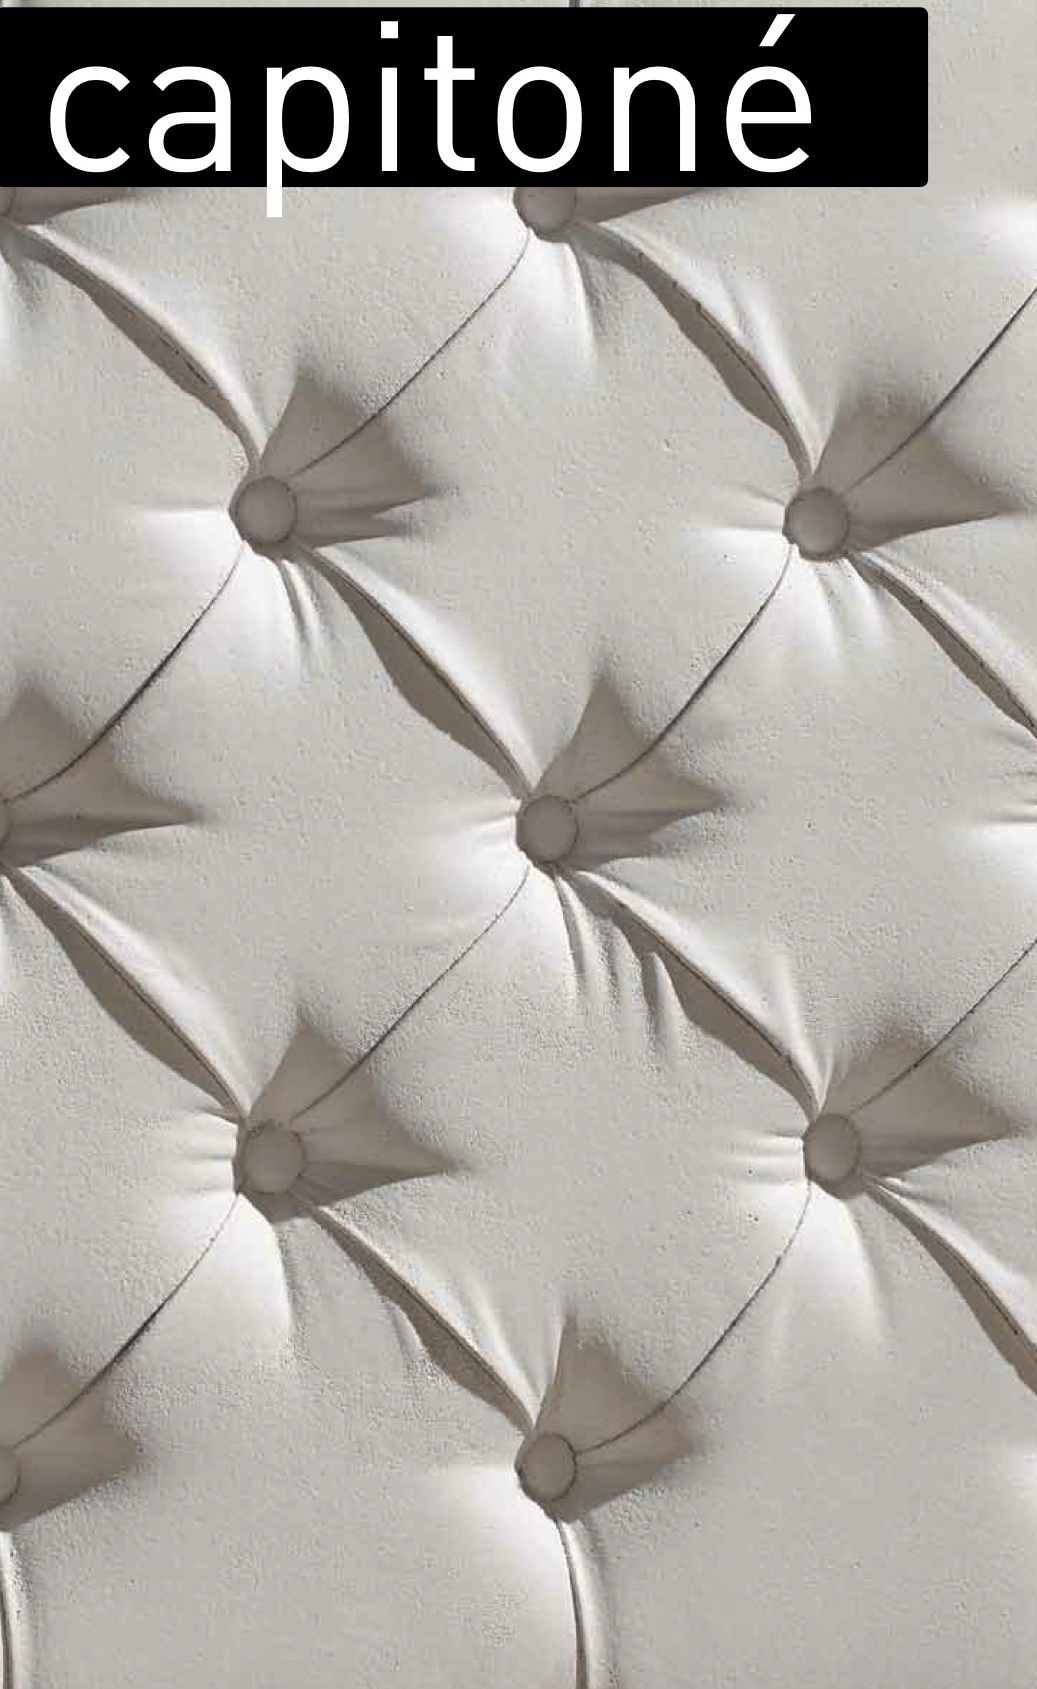 New Capitone Panels Launched At Surface Design